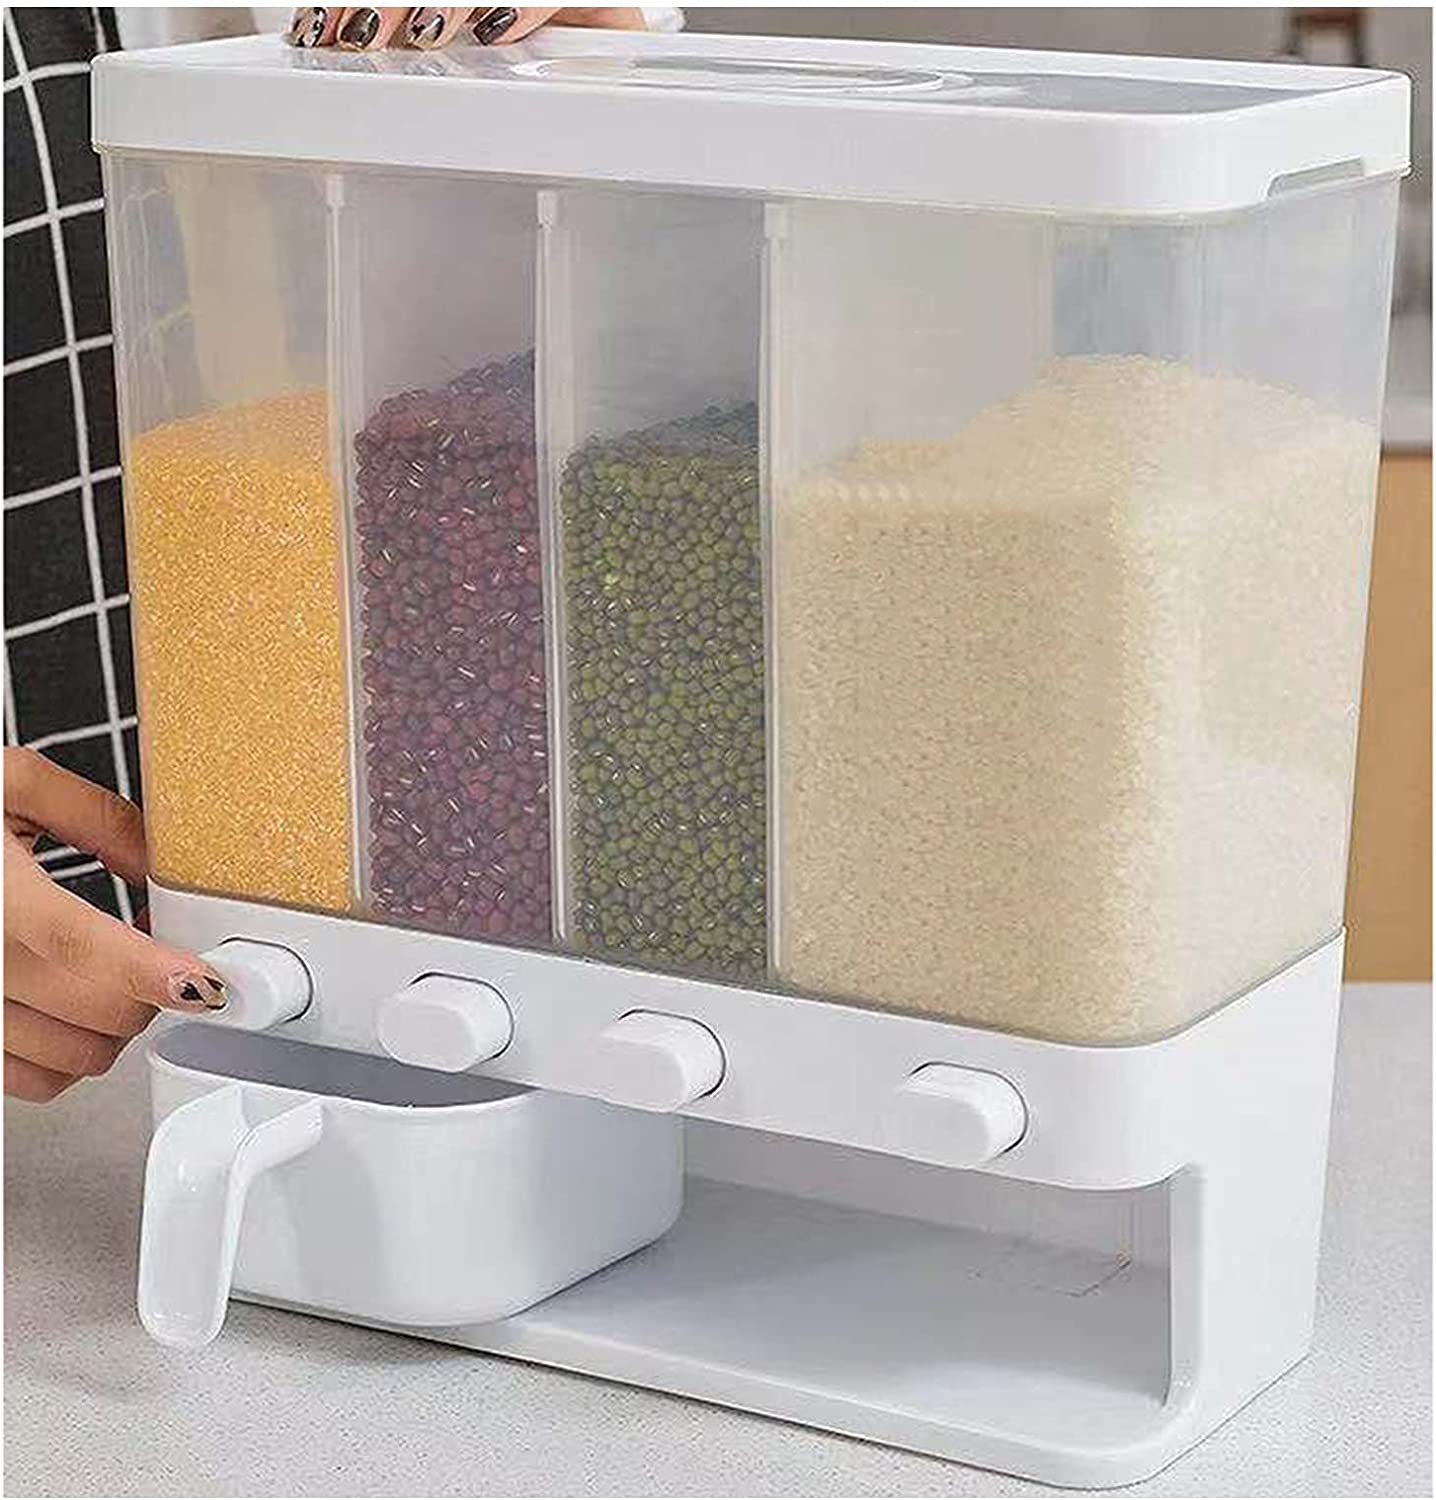 Wall Mounted Cereal Dispenser Kitchen Ri Clearance SALE Surprise price Limited time Container Sealed Grain